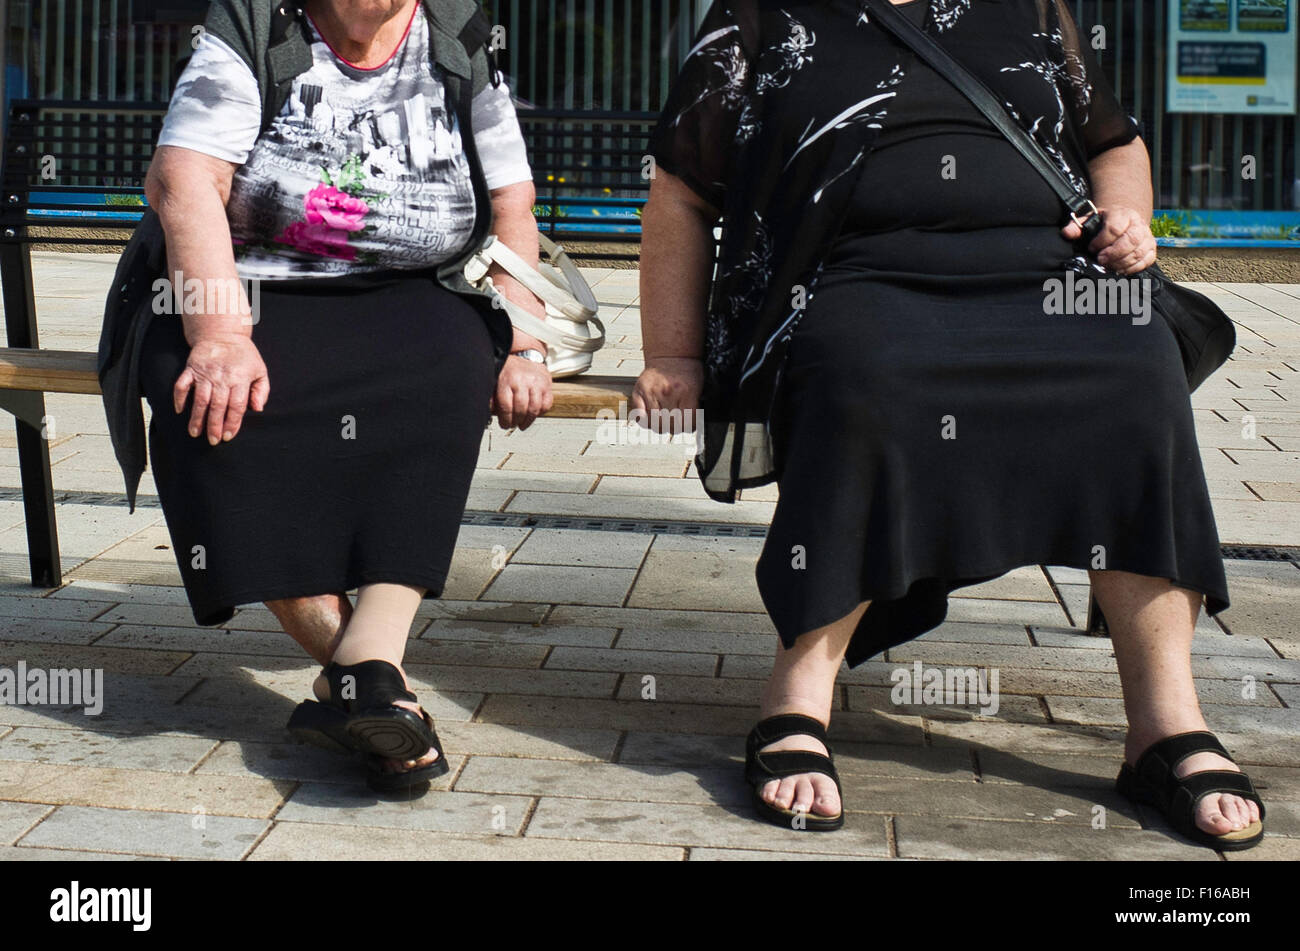 two overweight women sitting on a bench - Stock Image